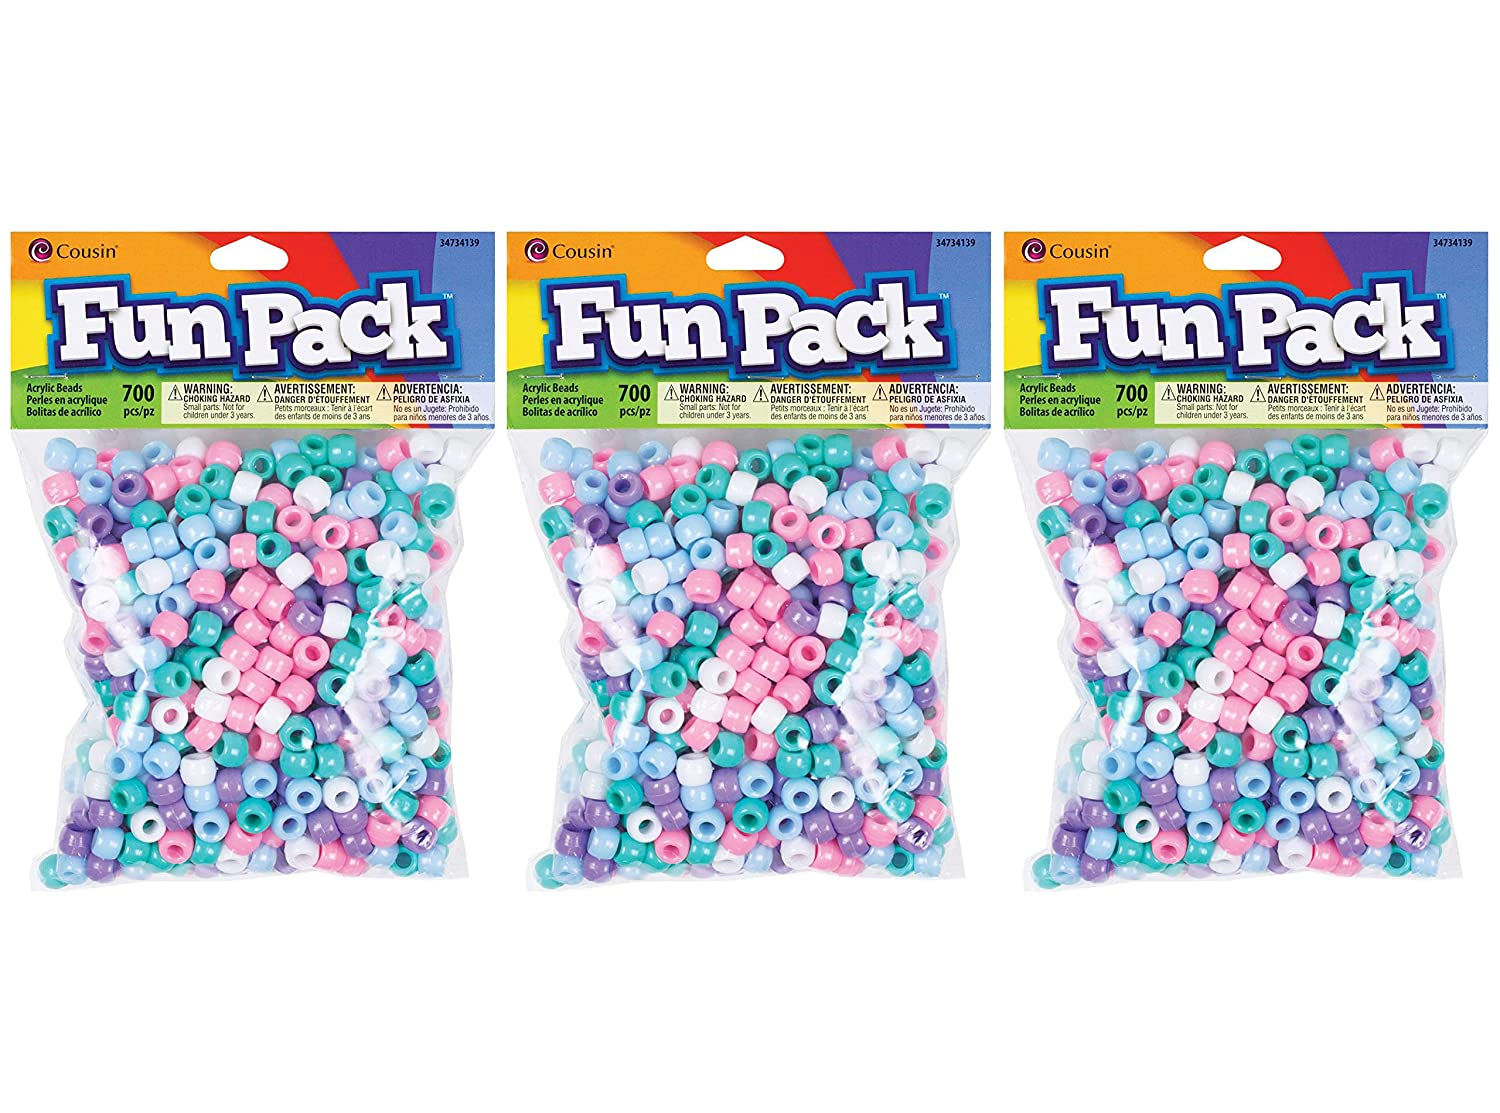 Cousin Pastel Color Mix Pony Bead Fun Pack hr P ck